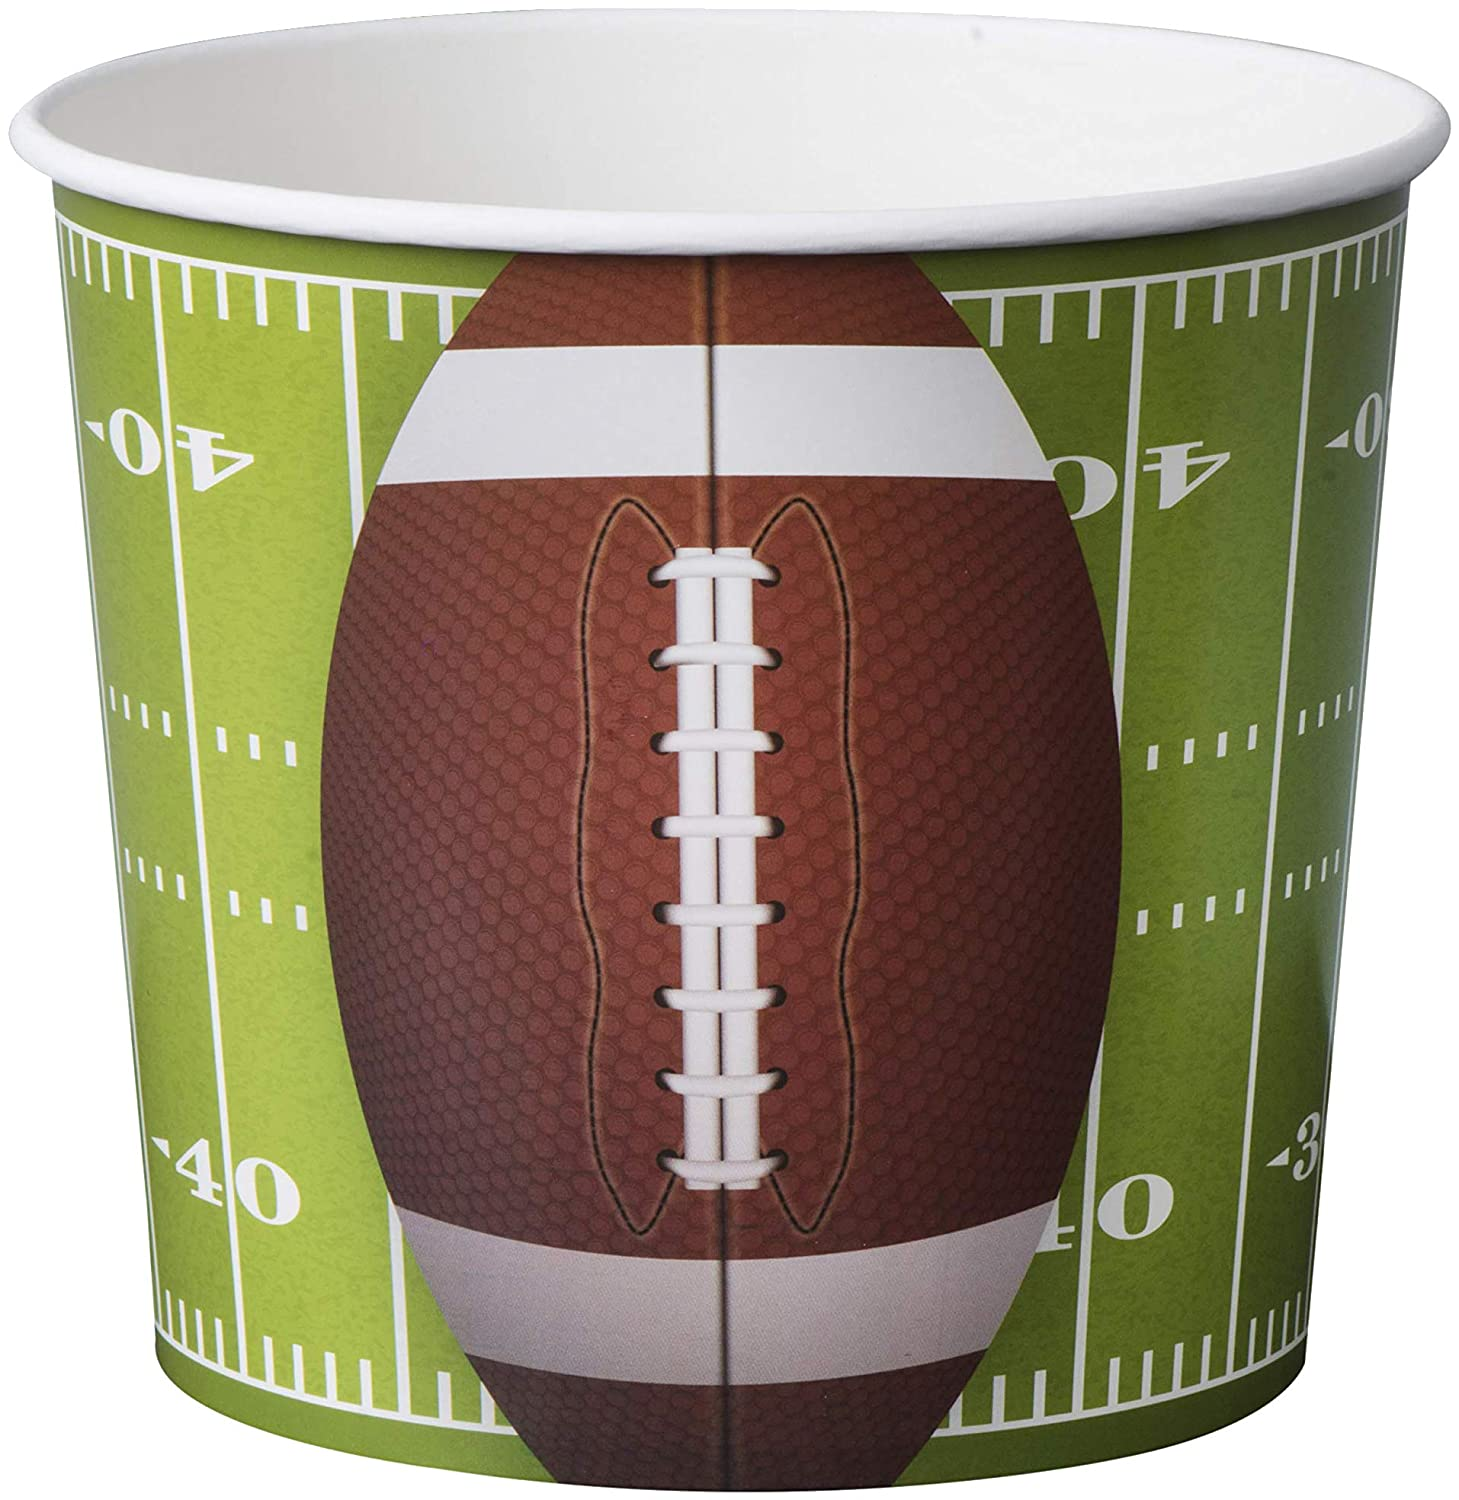 Hammont Football Party Supplies 84 Oz Snack Cups -Superbowl Disposable Paper Bucket Ideal for Tailgate Parties,Family Dinner and Sports Event (8 Pack )